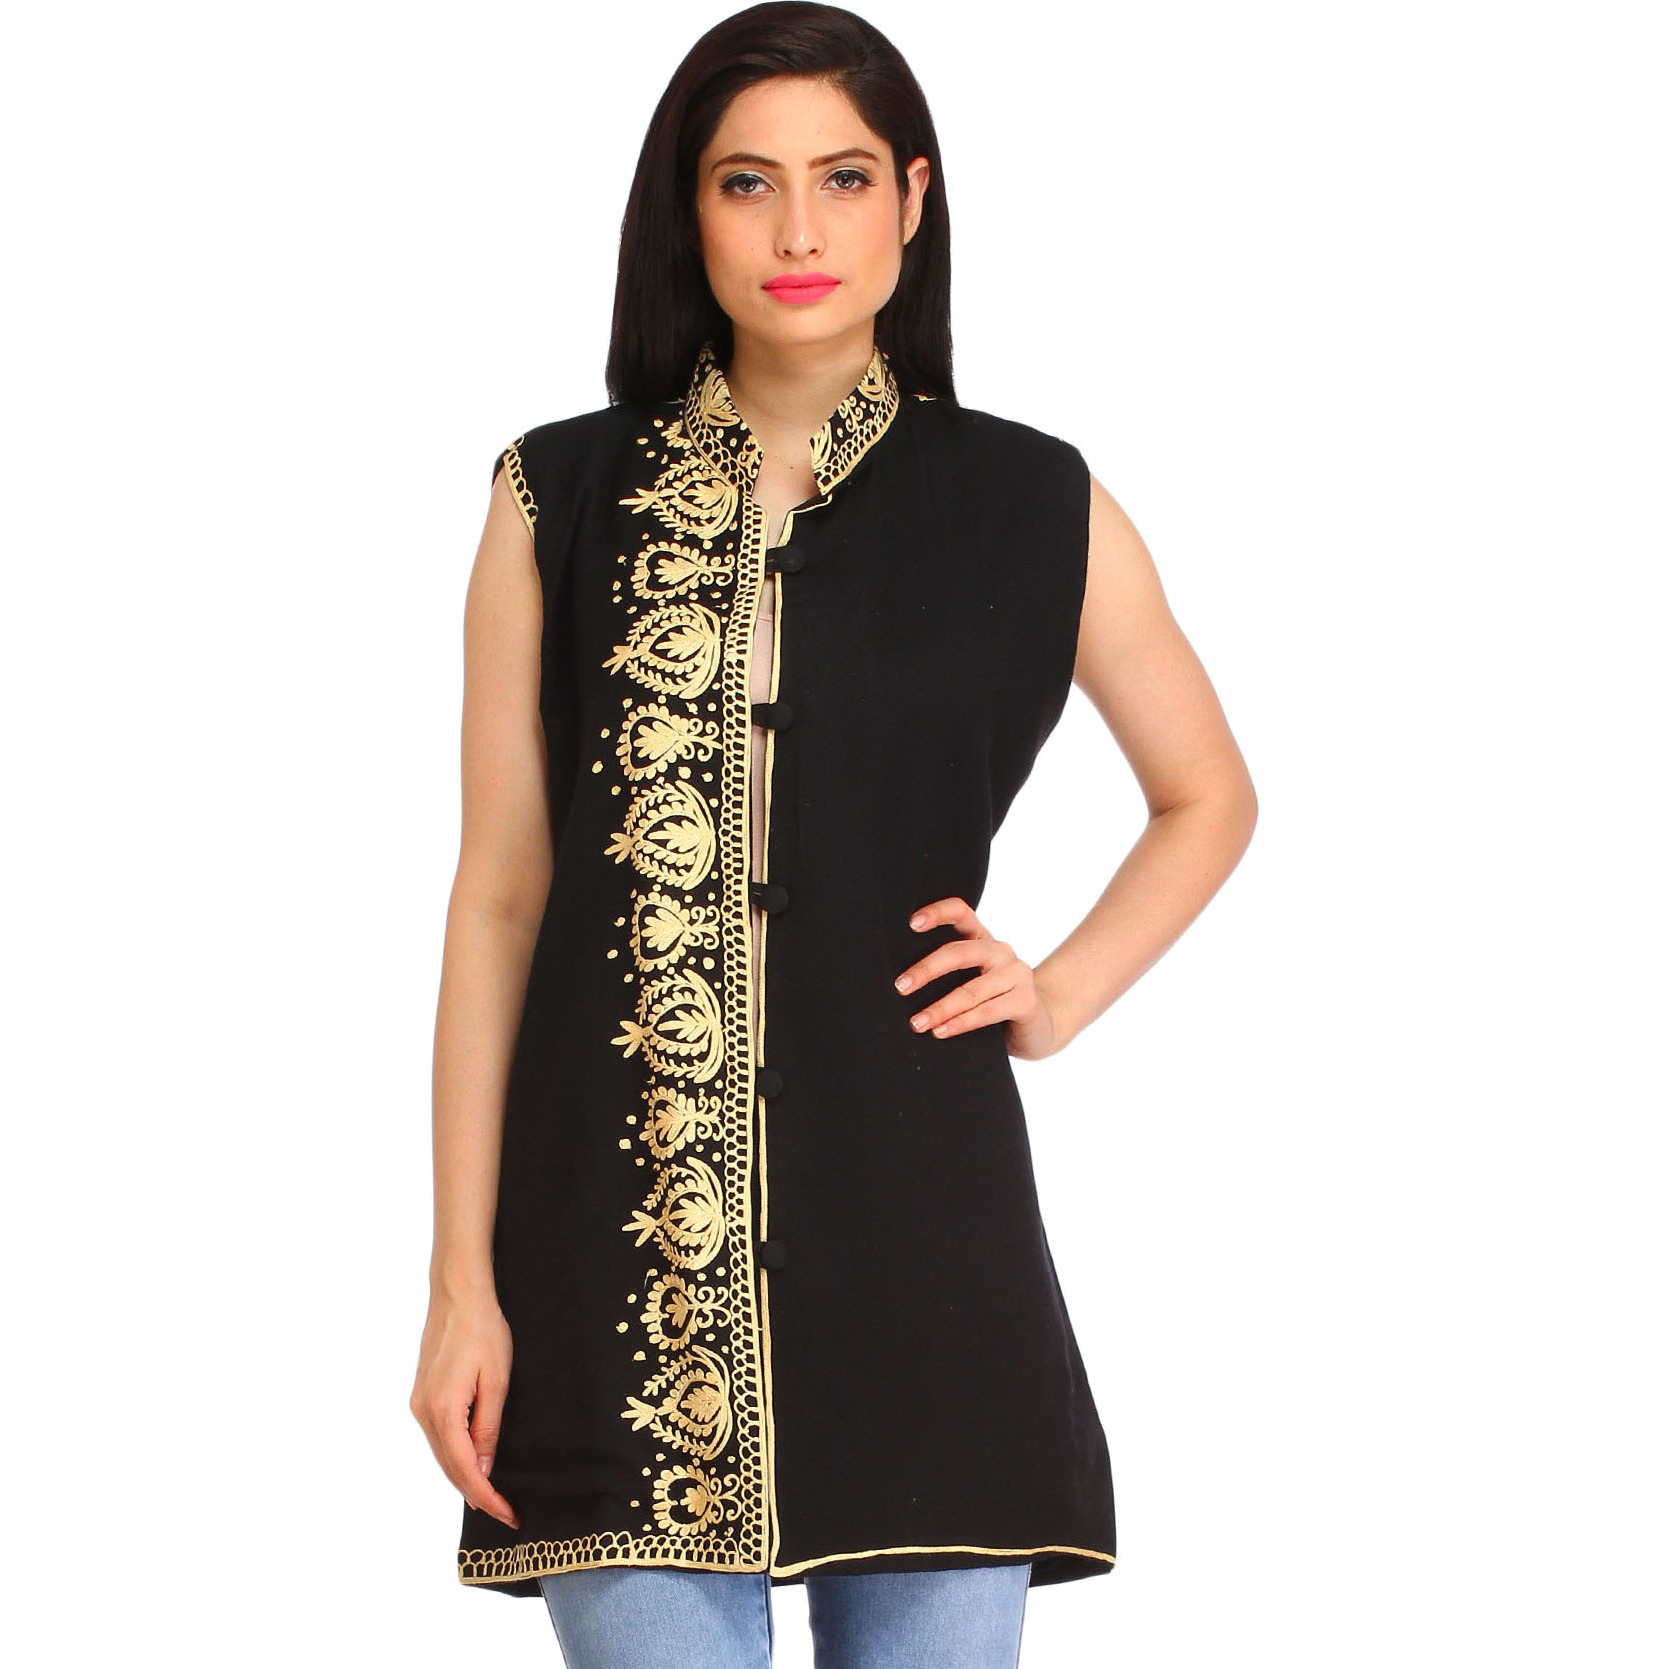 Jet-Black Ari Embroidered Jacket from Amritsar